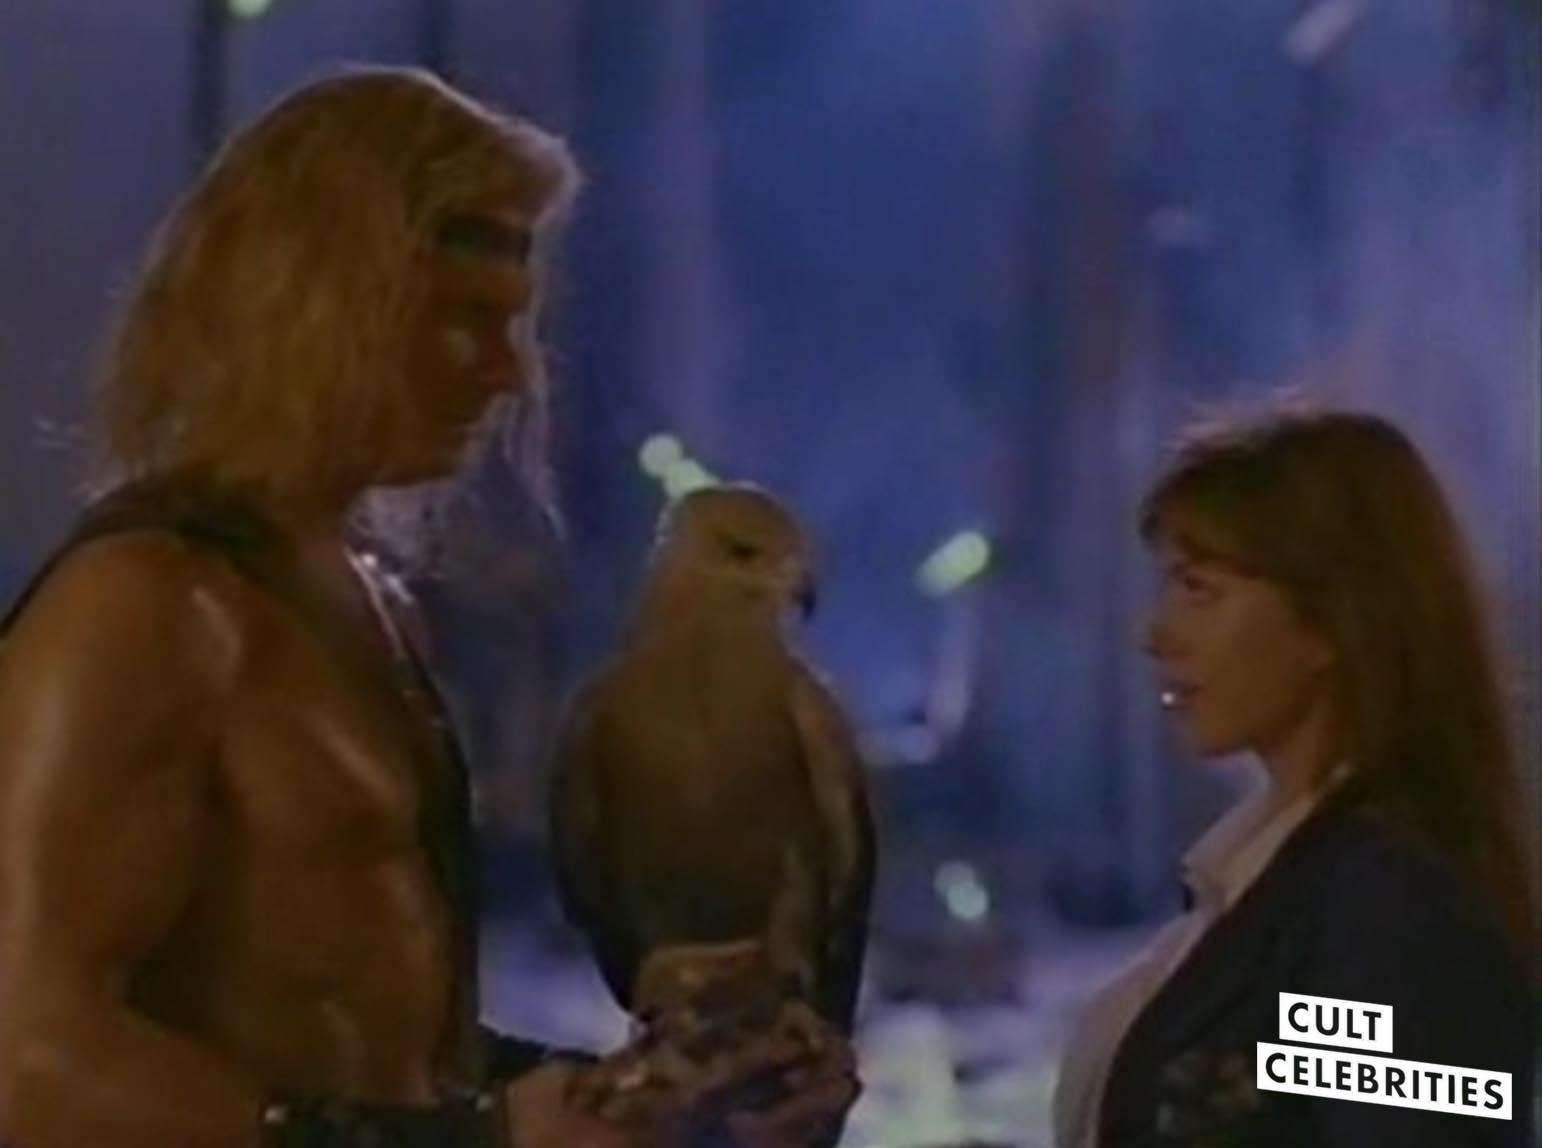 Marc Singer and Kari Wuhrer in Beastmaster 2: Through the Portal of Time (1991)